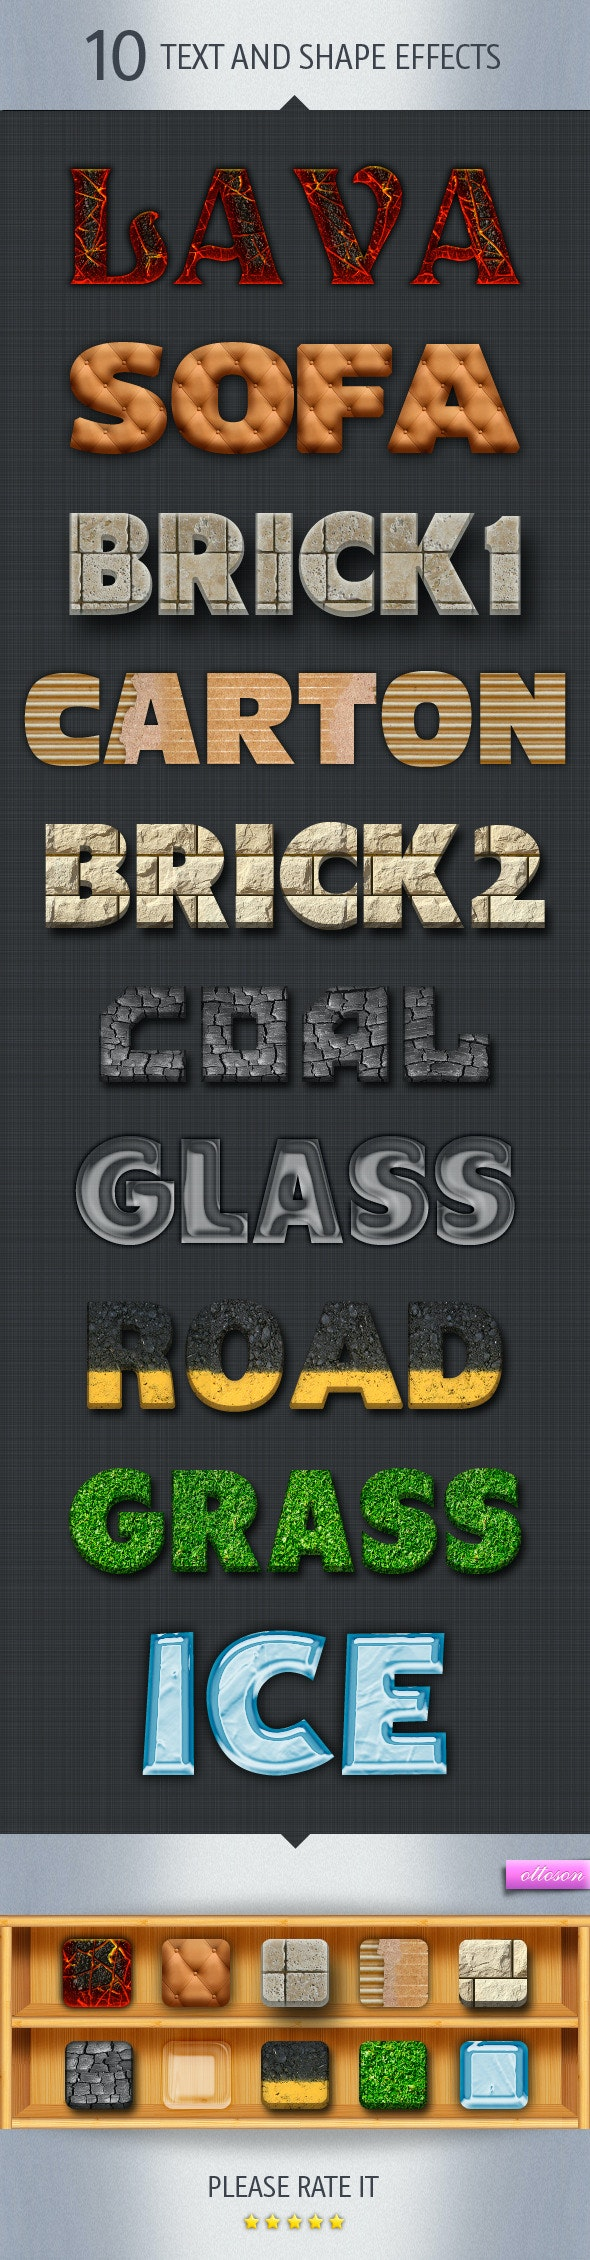 10 Text and Shape Effects - Text Effects Styles